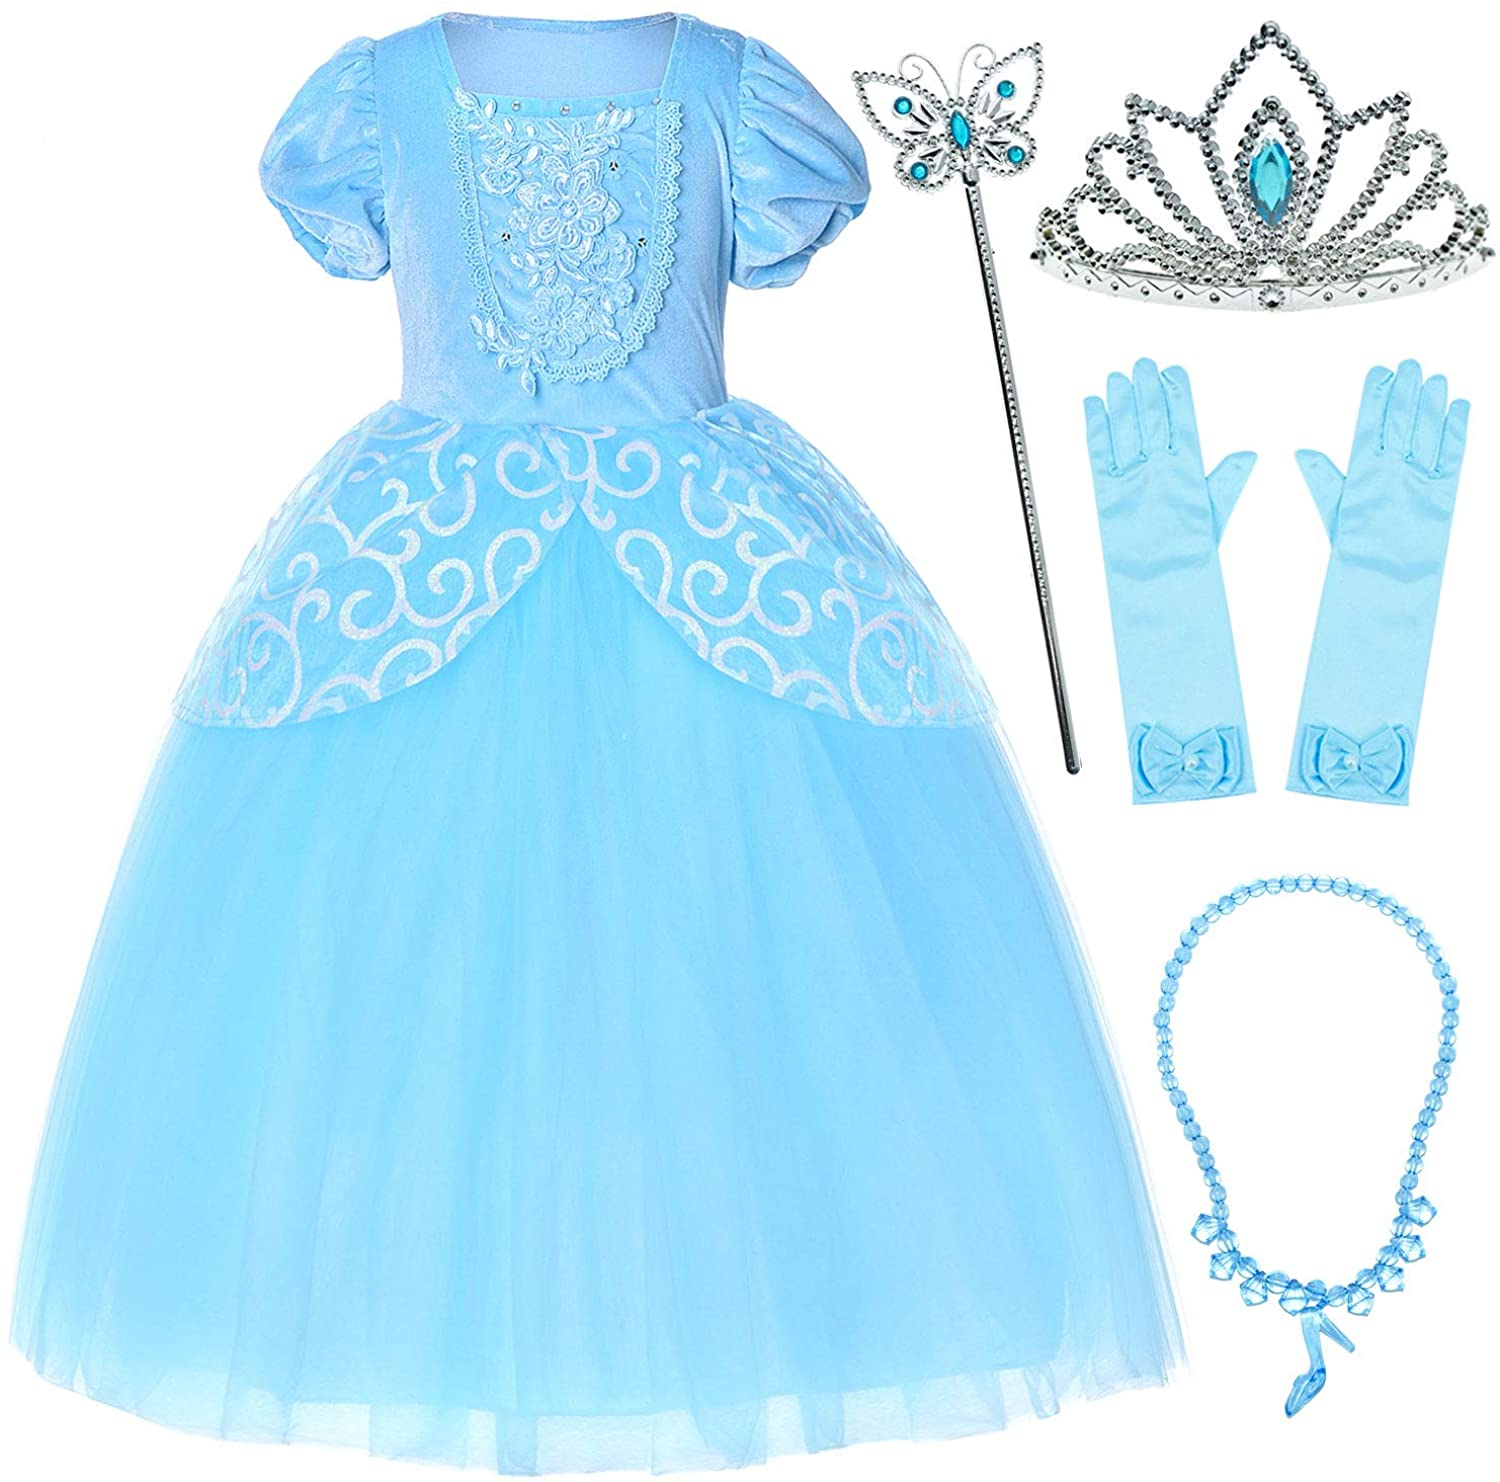 quality assurance Party Chili Princess Costume for Accessories favorite Dress Girls Up with